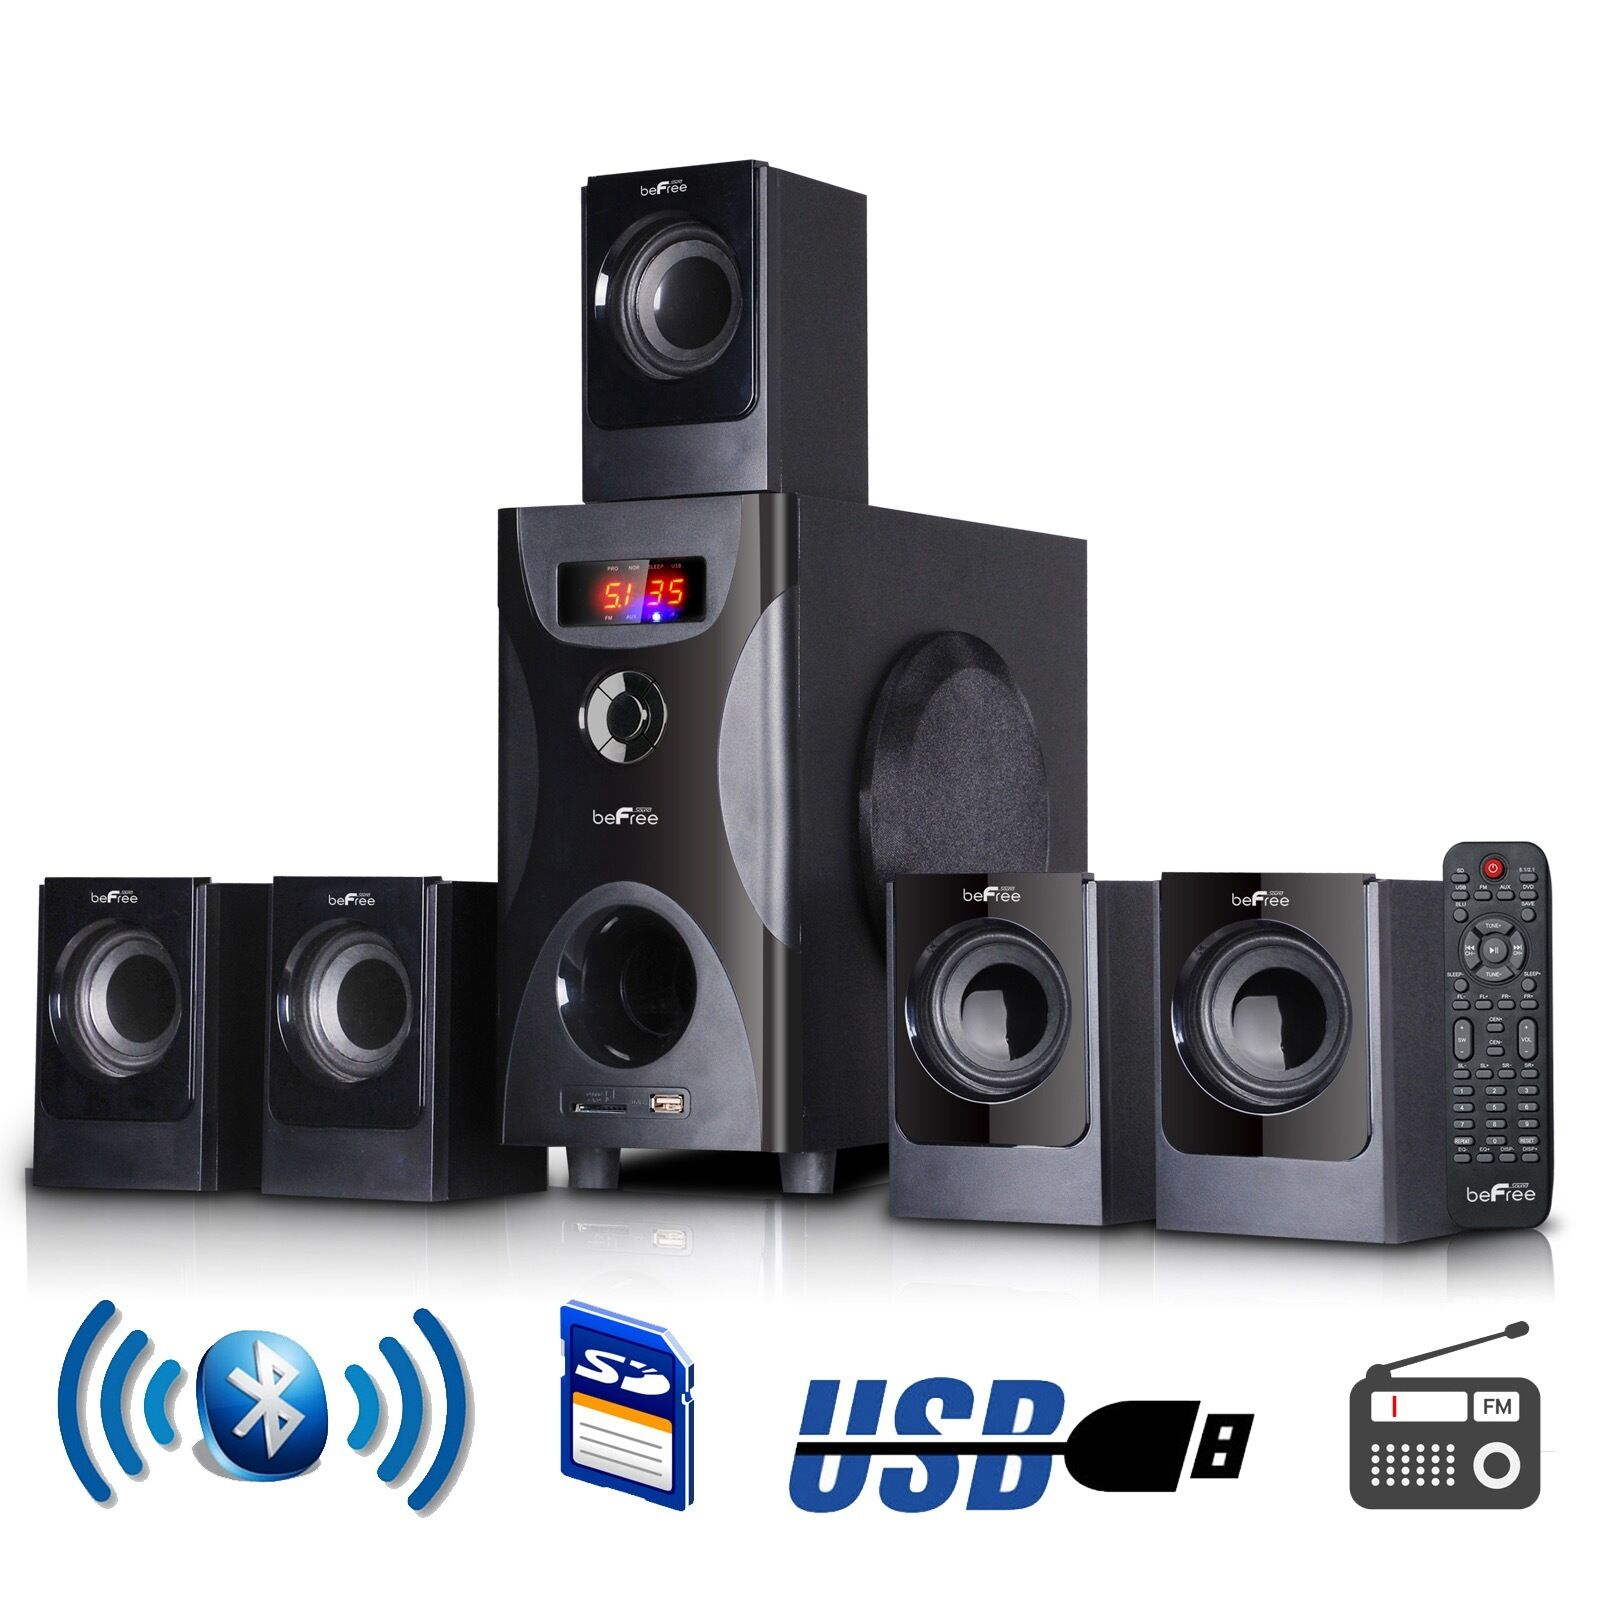 bluetooth befree sound bfs425 5 1 channel surround sound speaker system in black 13964973617 ebay. Black Bedroom Furniture Sets. Home Design Ideas